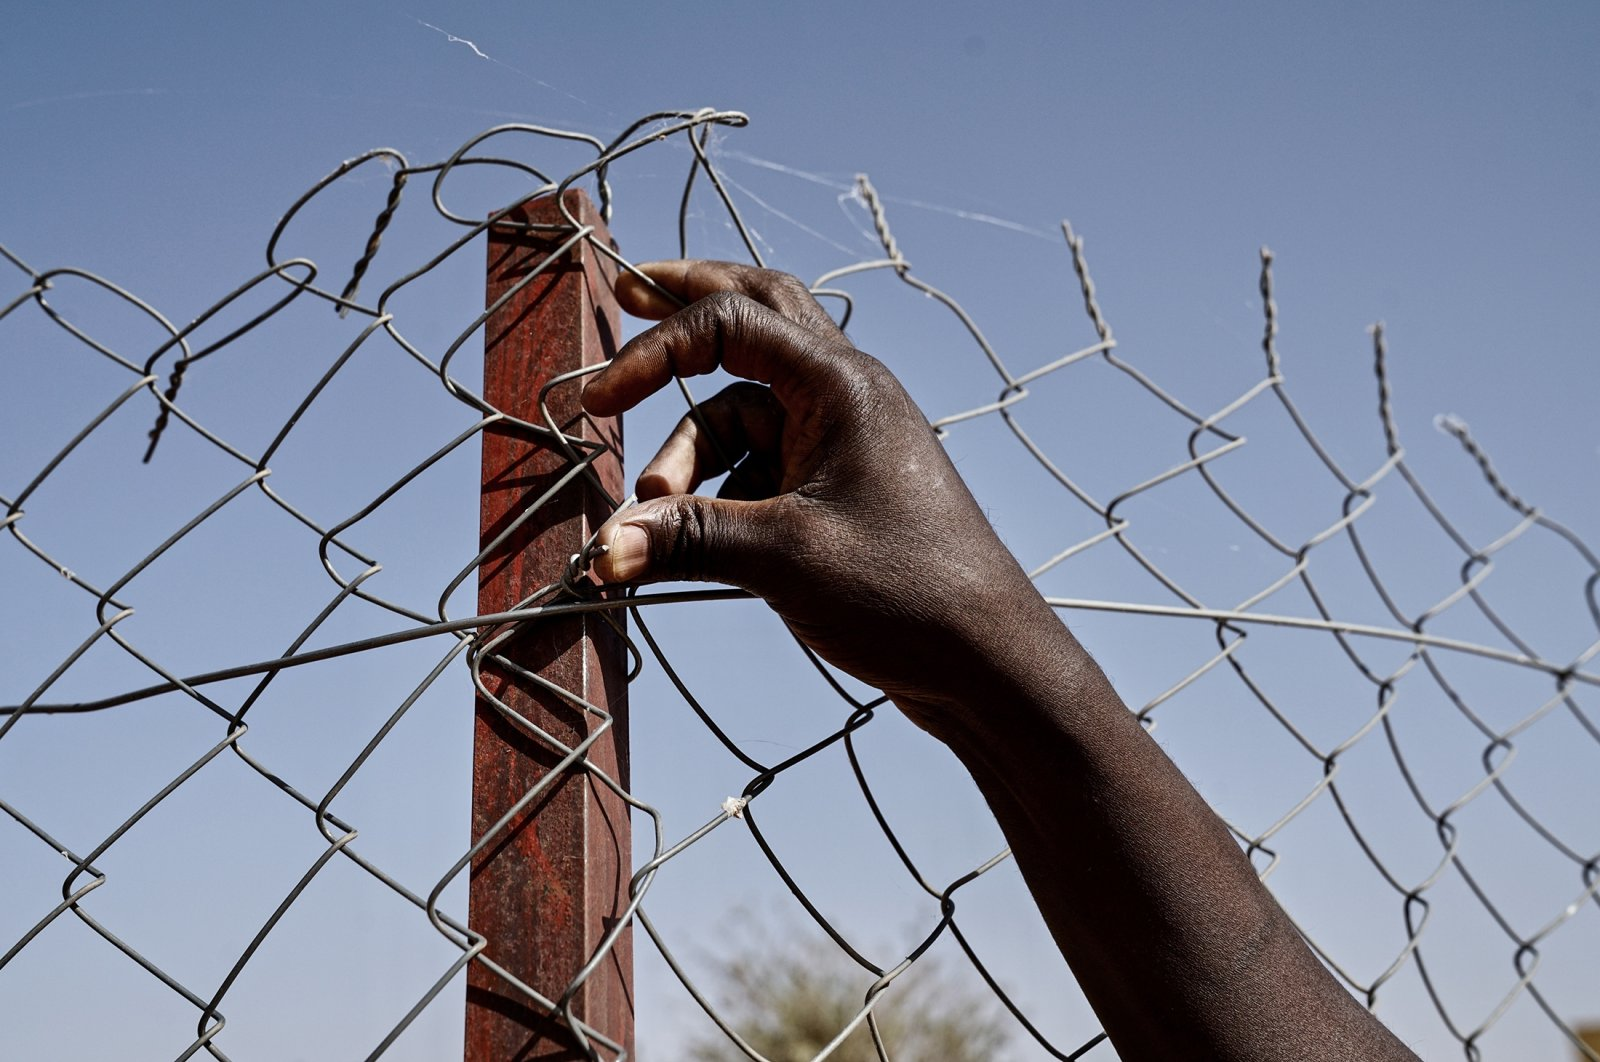 The hand and arm of a refugee on the perimeter fence of Tillaberi Refugee settlement located some 50 miles (80 kilometers) from Niger's capital of Niamey, Dec. 13, 2019. (Getty Images Photo)